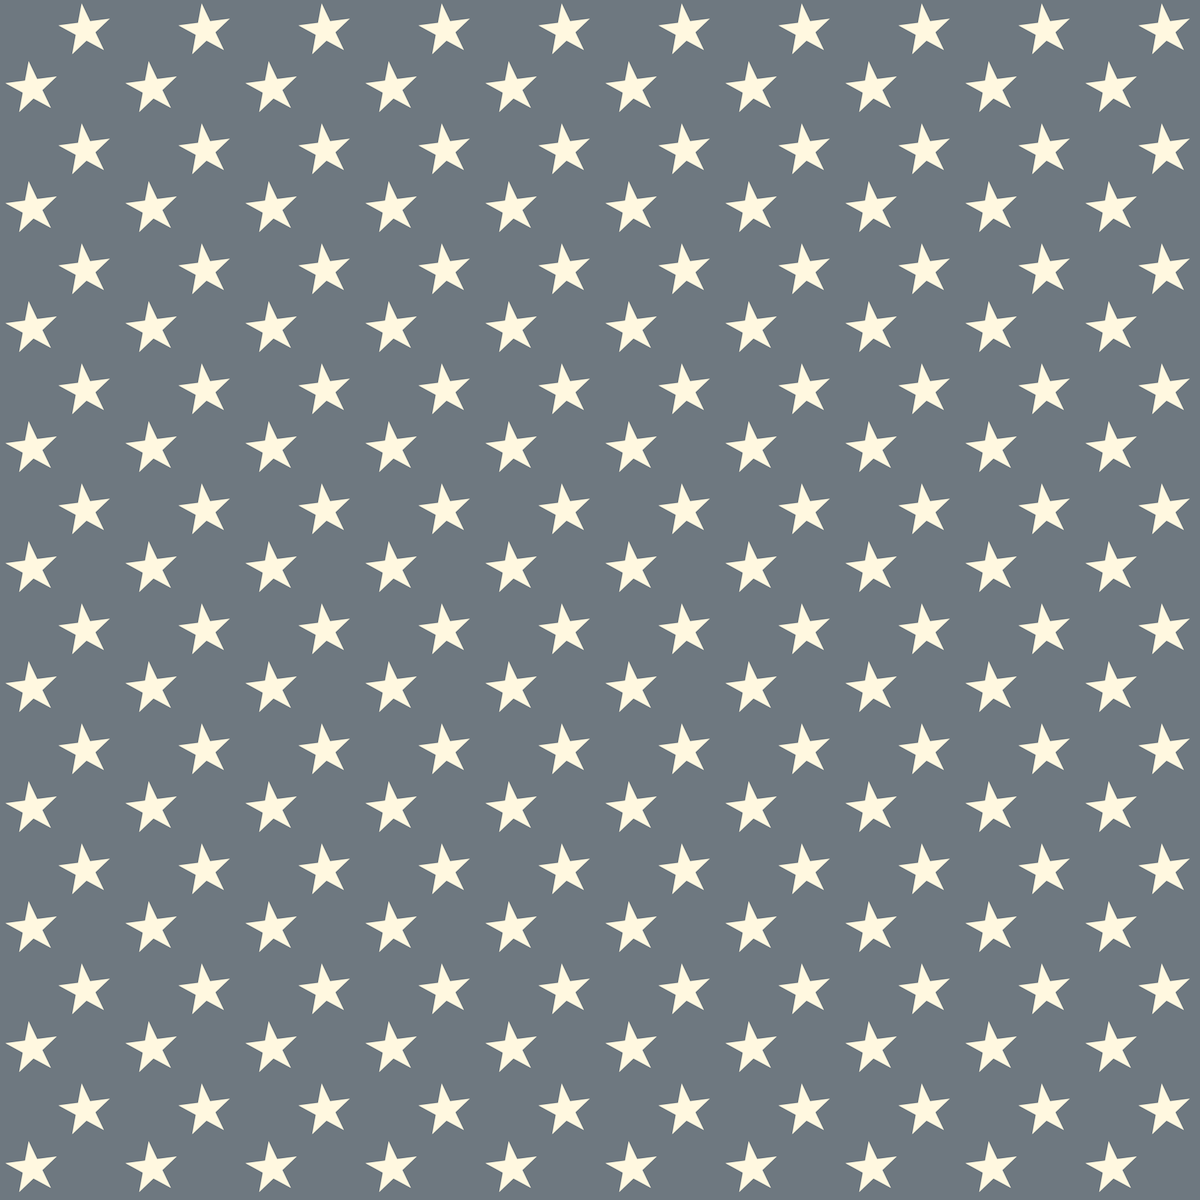 Free Digital Stars And Polka Dot Scrapbooking Papers